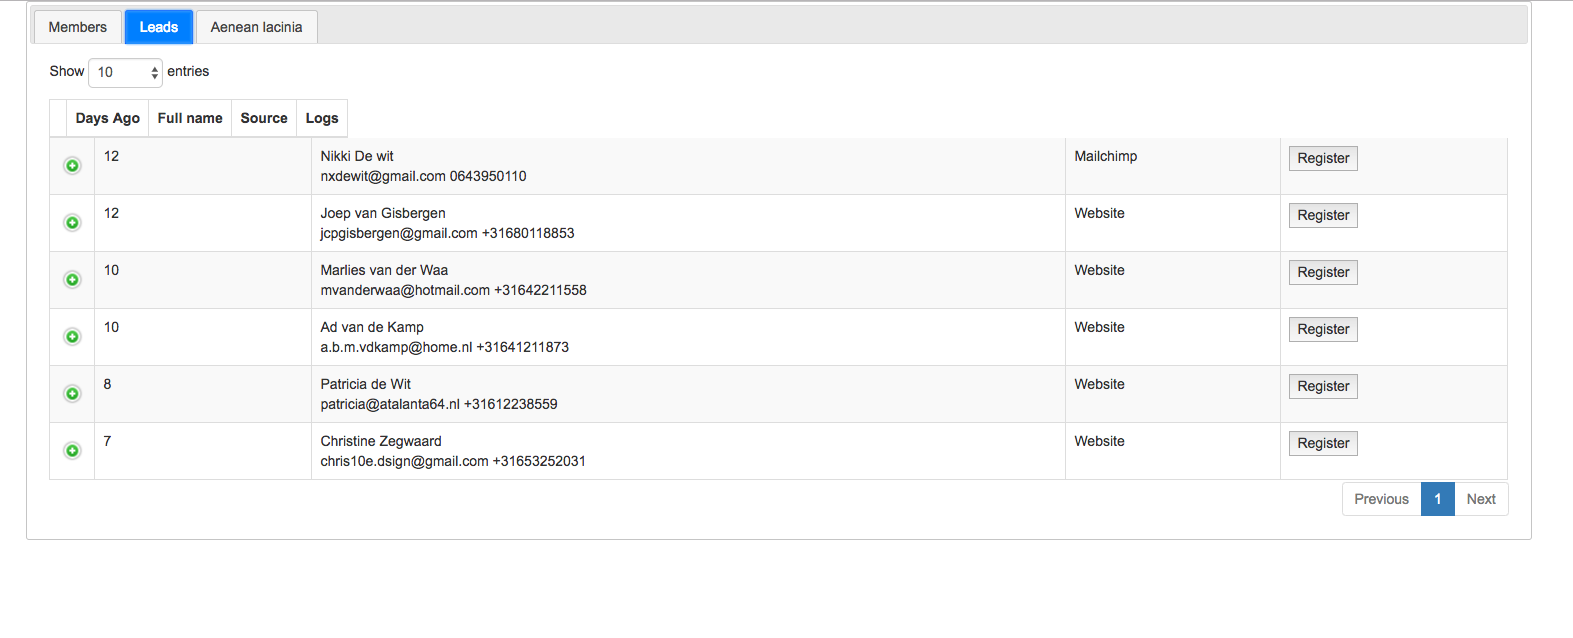 datatables with jquery tabs - column header size changed